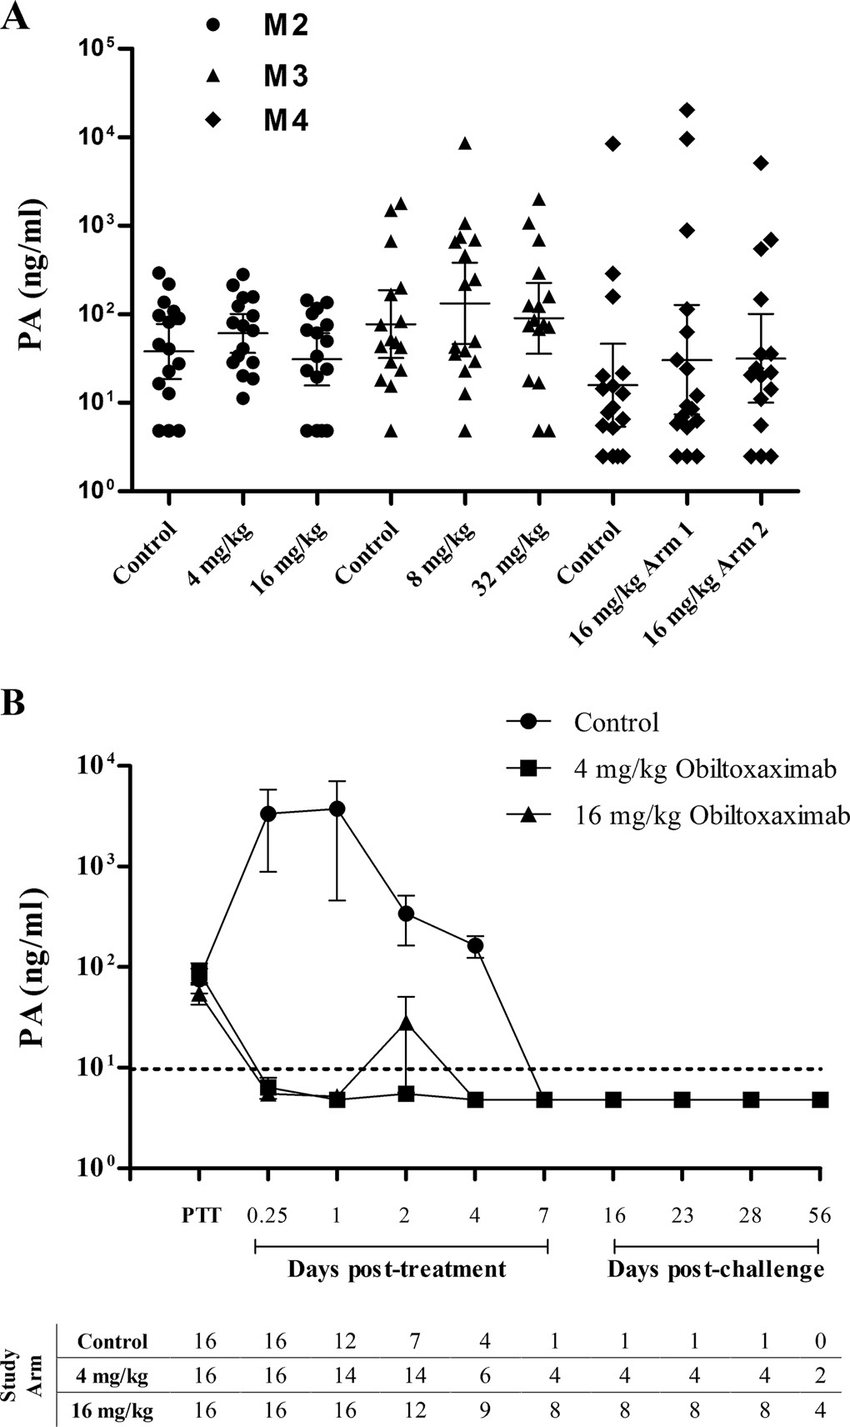 hight resolution of toxin neutralization with obiltoxaximab confers survival benefit in the treatment of inhalational anthrax nzw rabbits